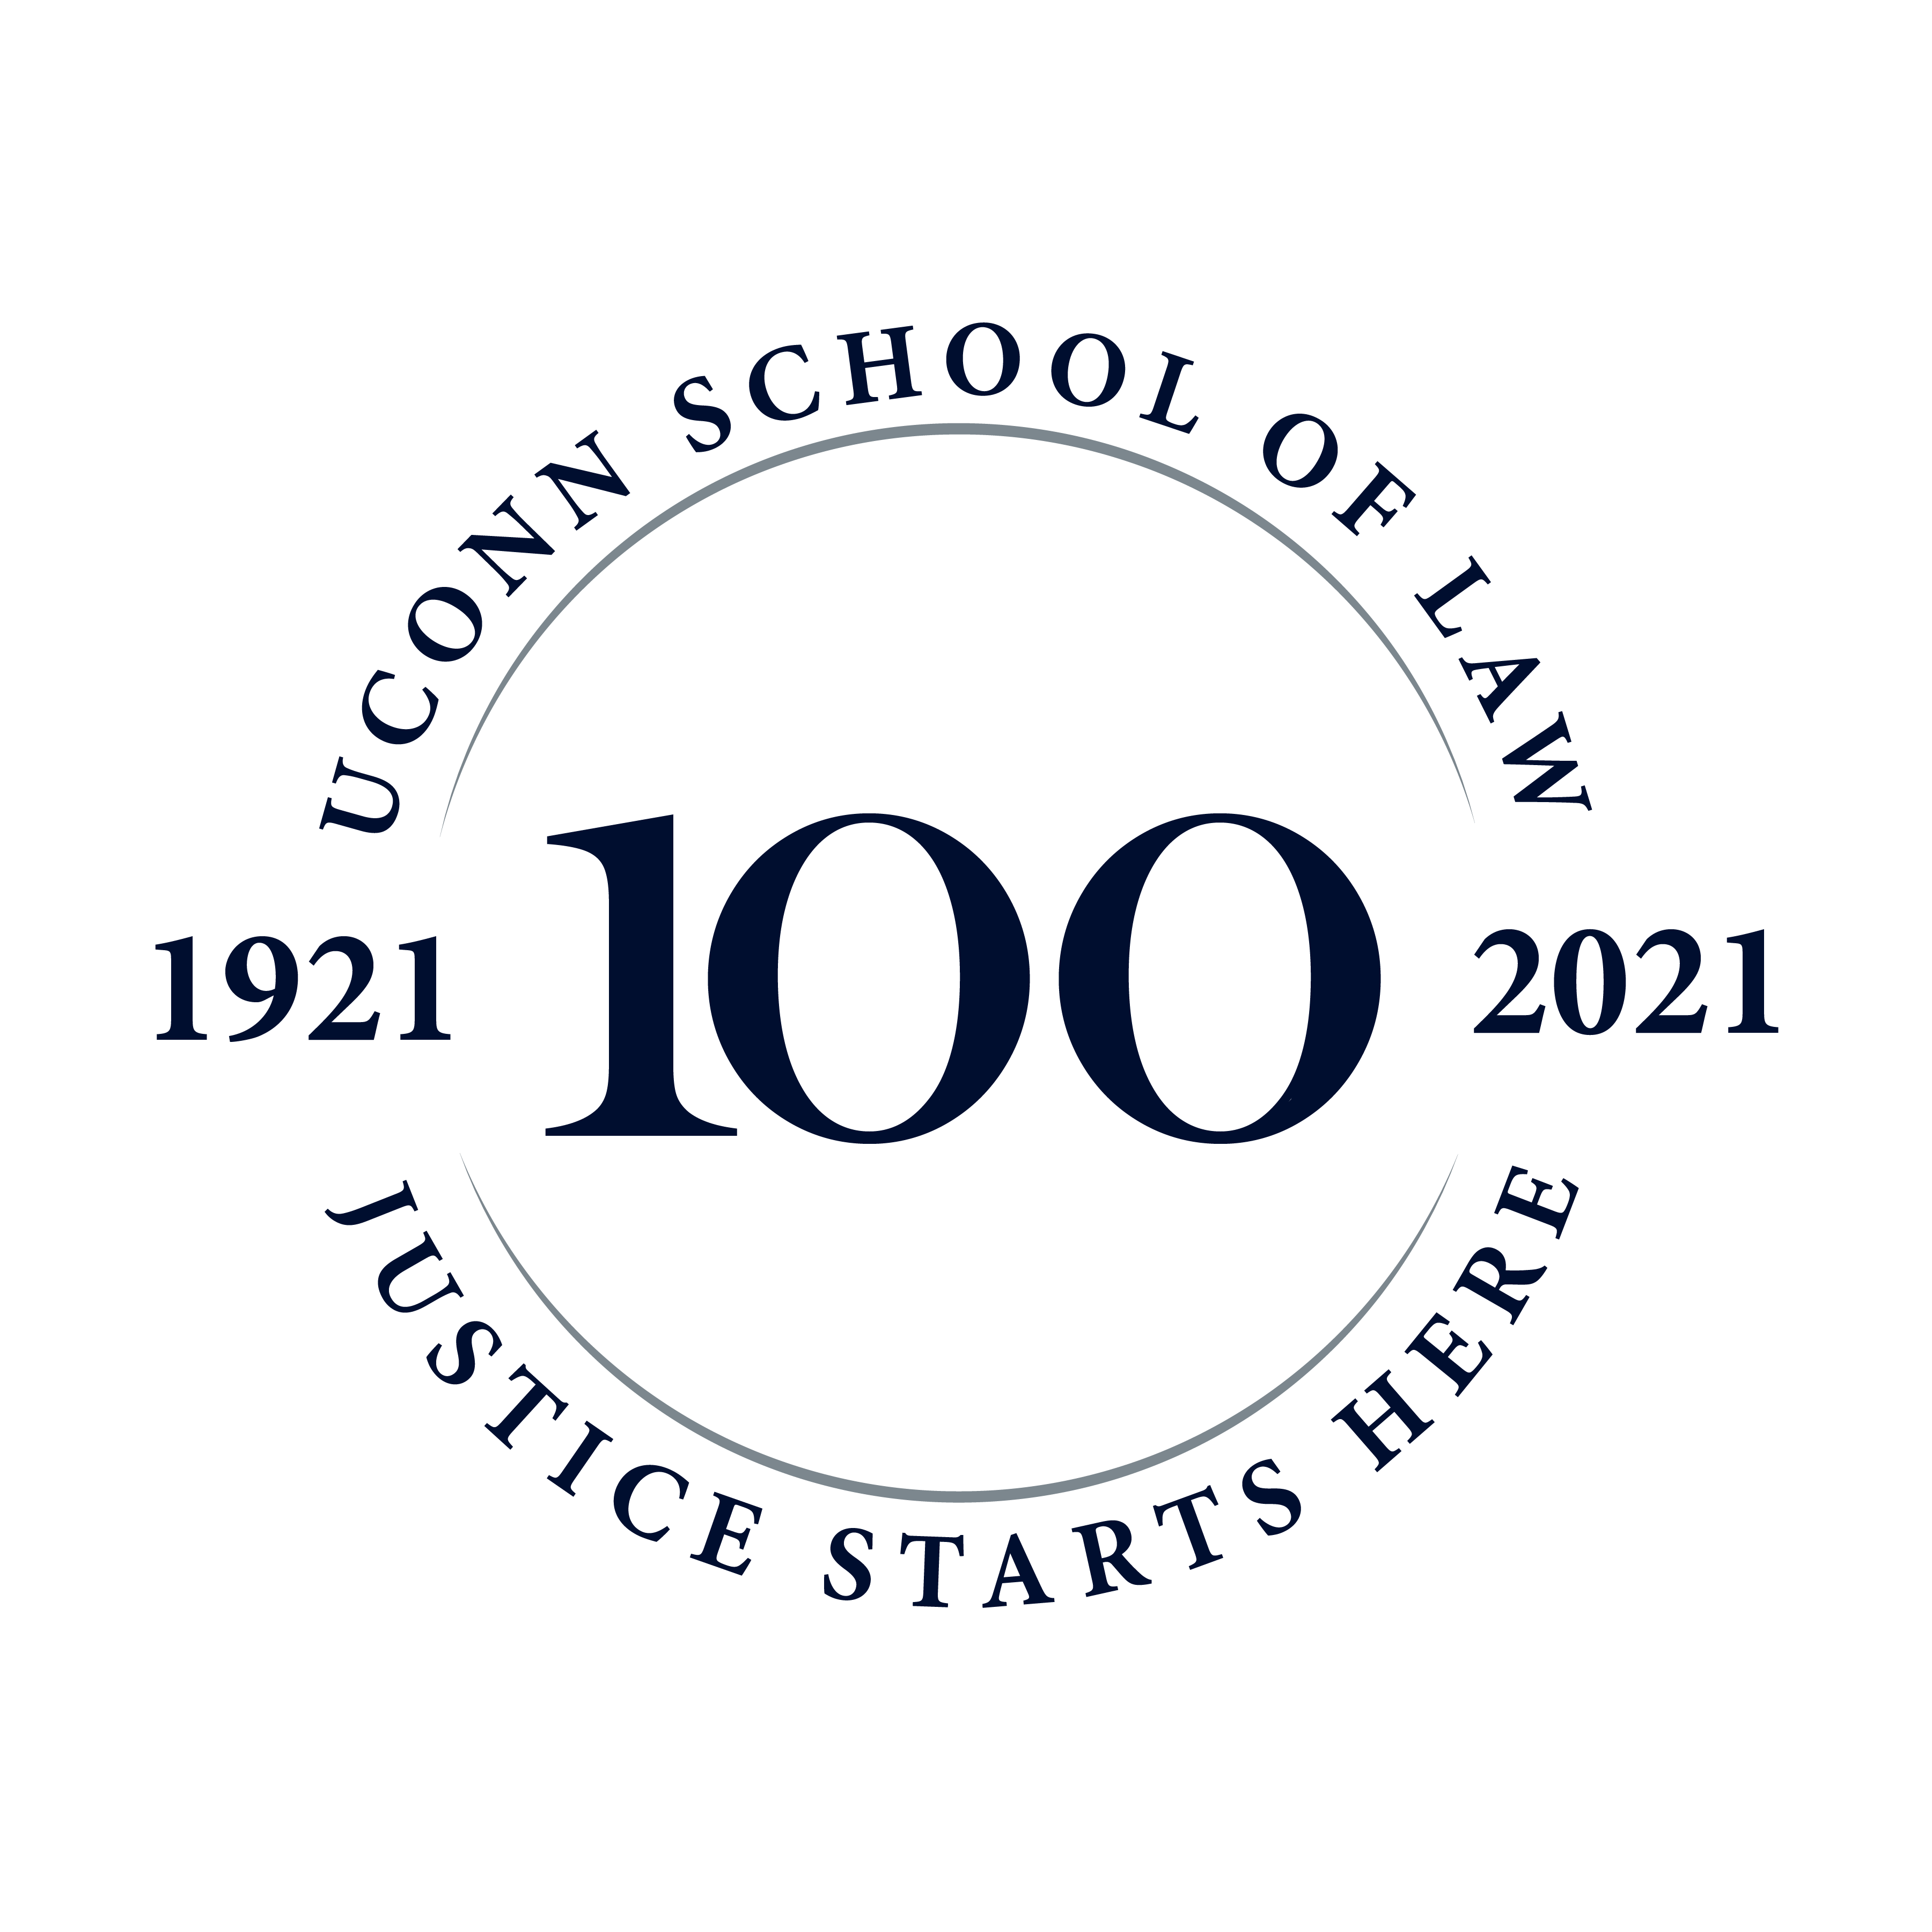 UConn School of Law - 100 - Justice Starts Here 1921-2021